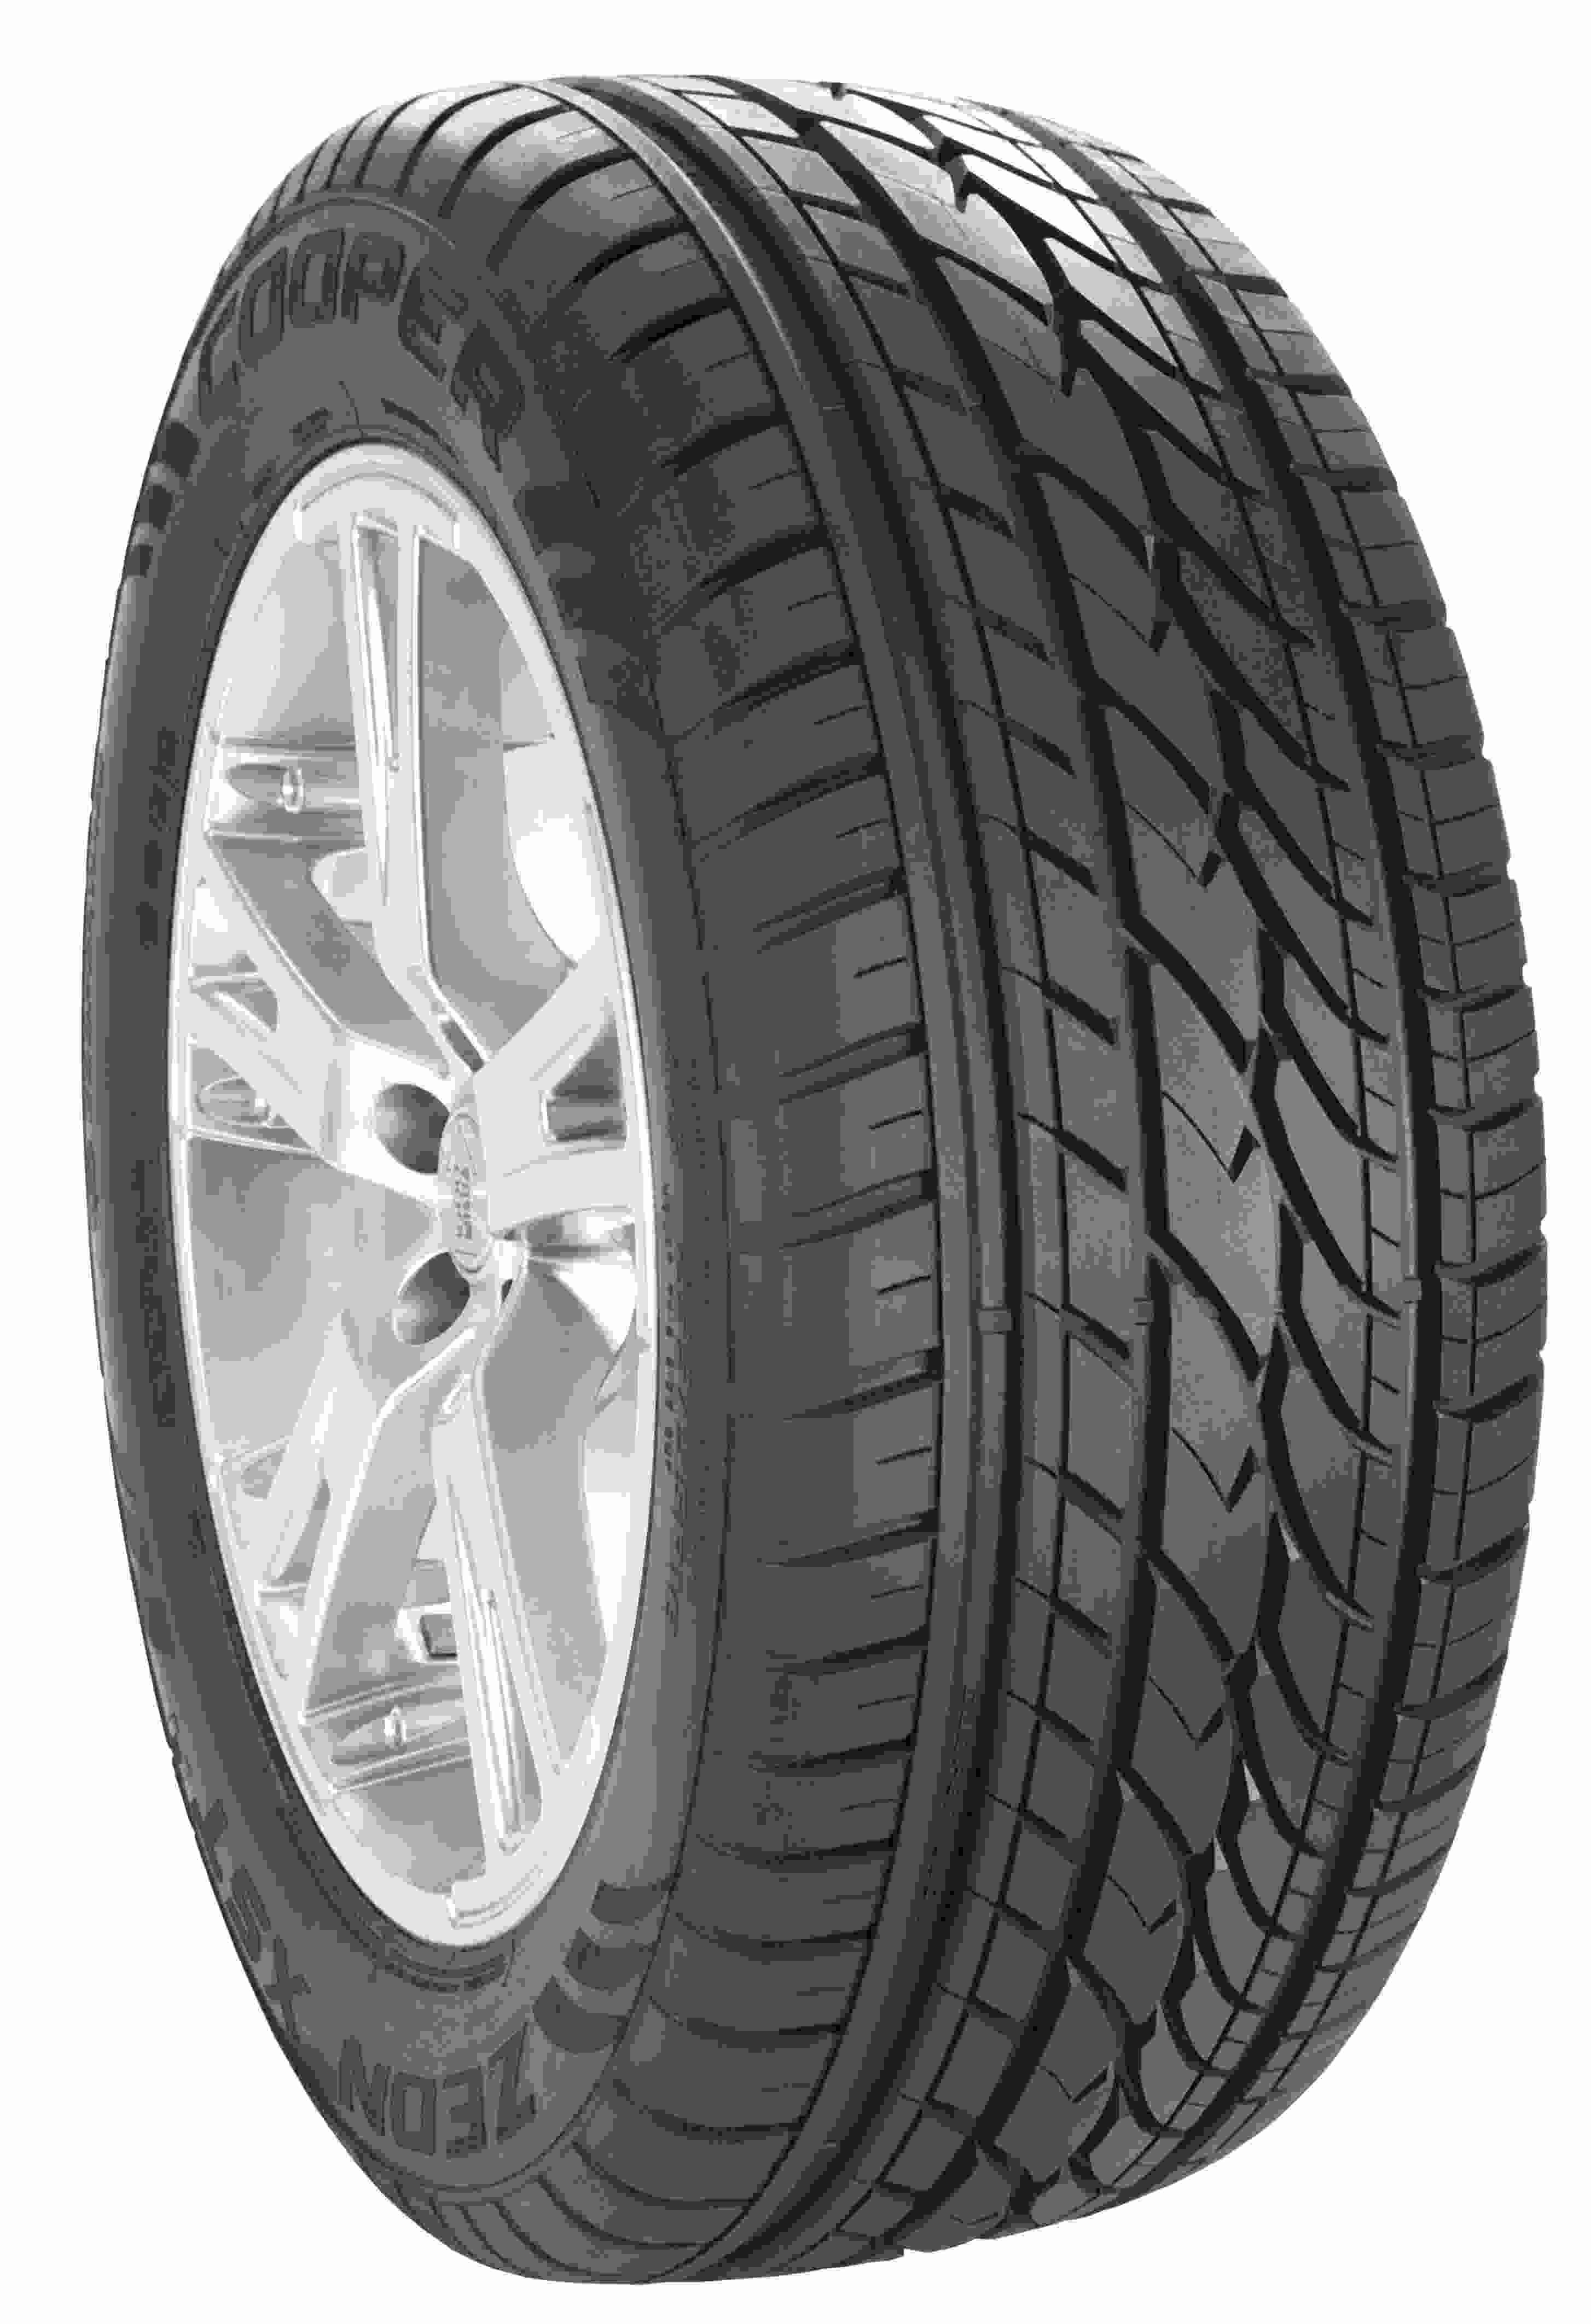 Neumático COOPER ZEON XST-a 215/65R16 98 H